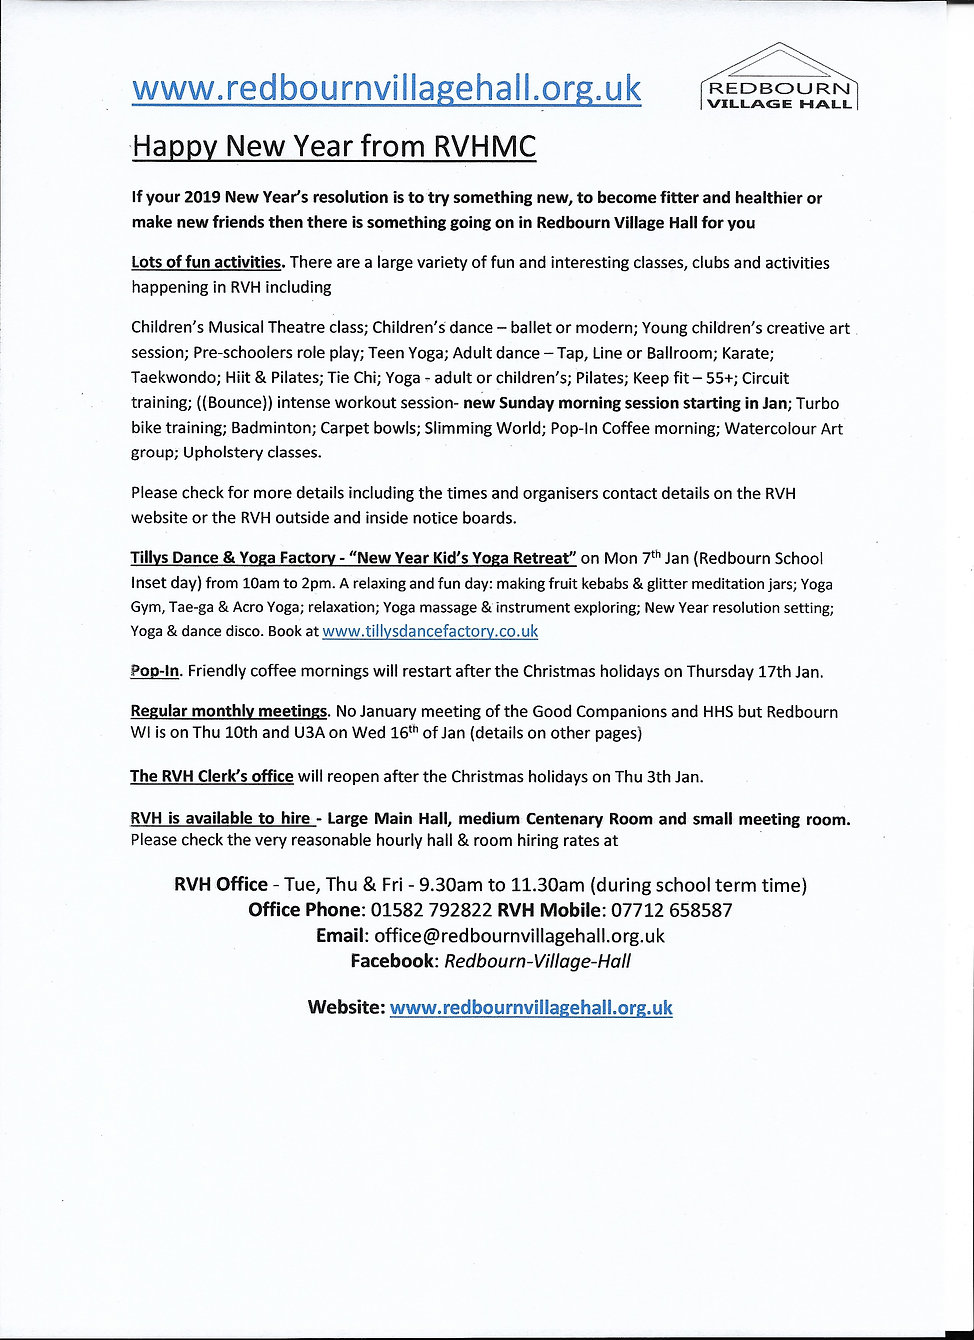 Redbourn Village Hall news what's on in January 2019